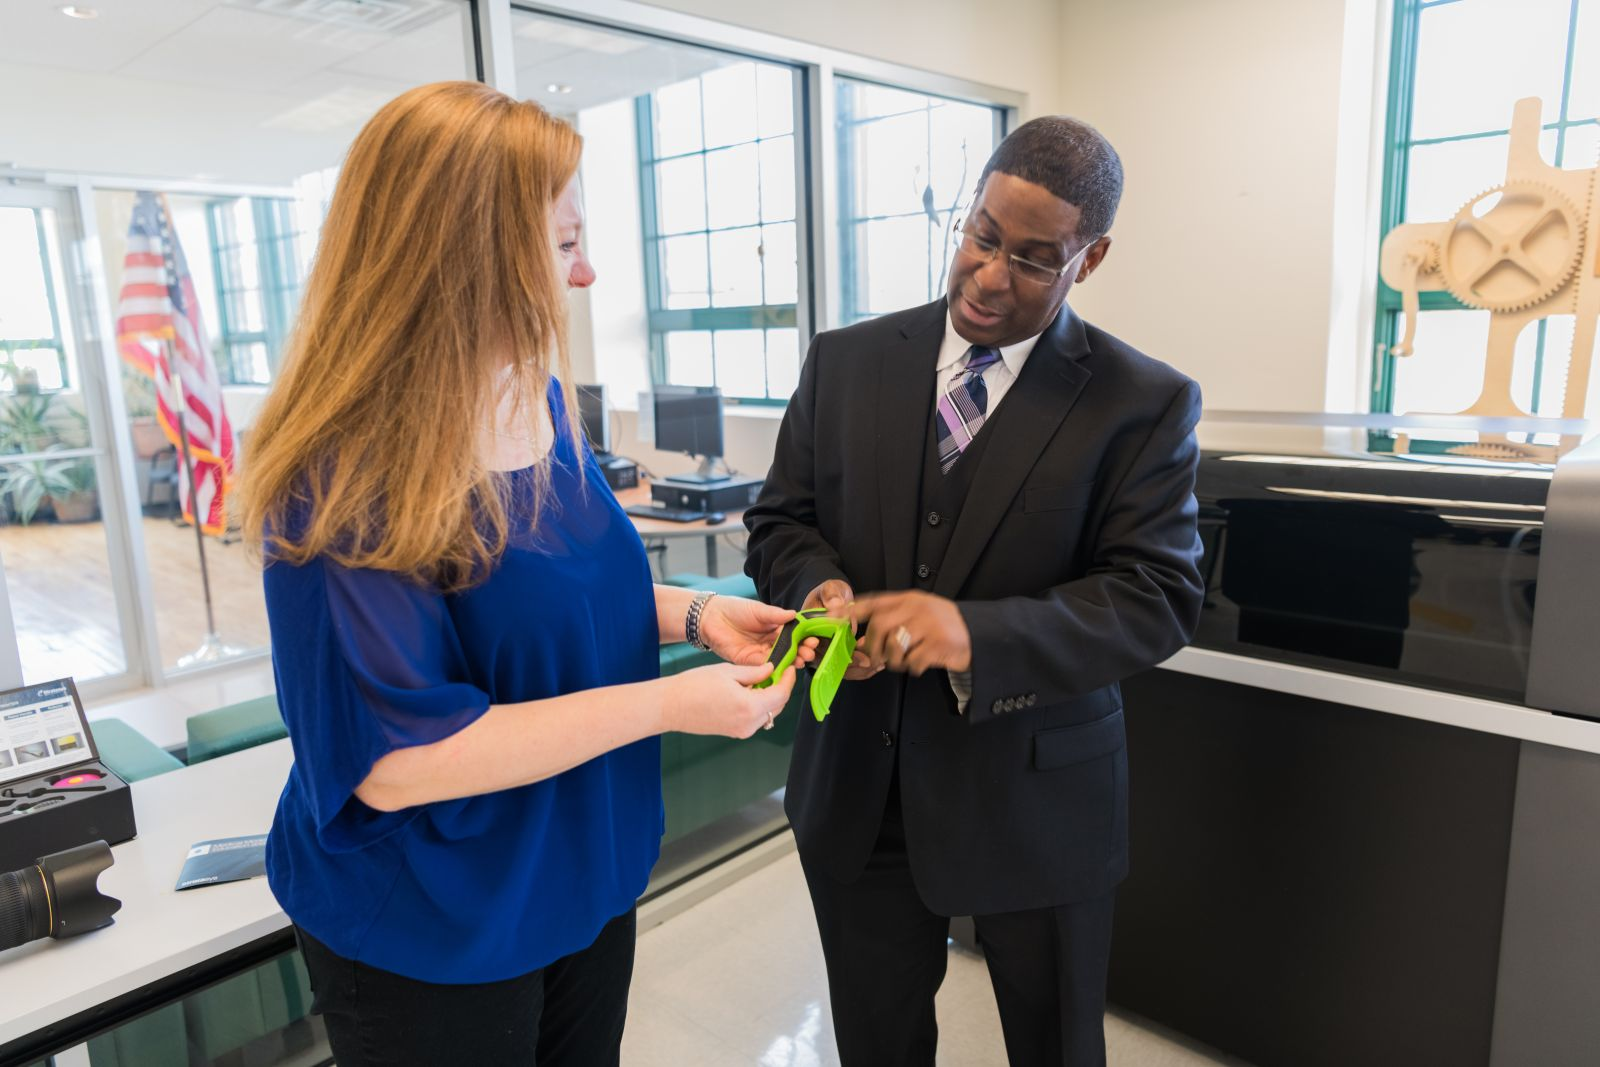 Tara Payne Vallin CEO of Add A Handle shows her product to Brian Merritt, Director of The Haverstraw Center